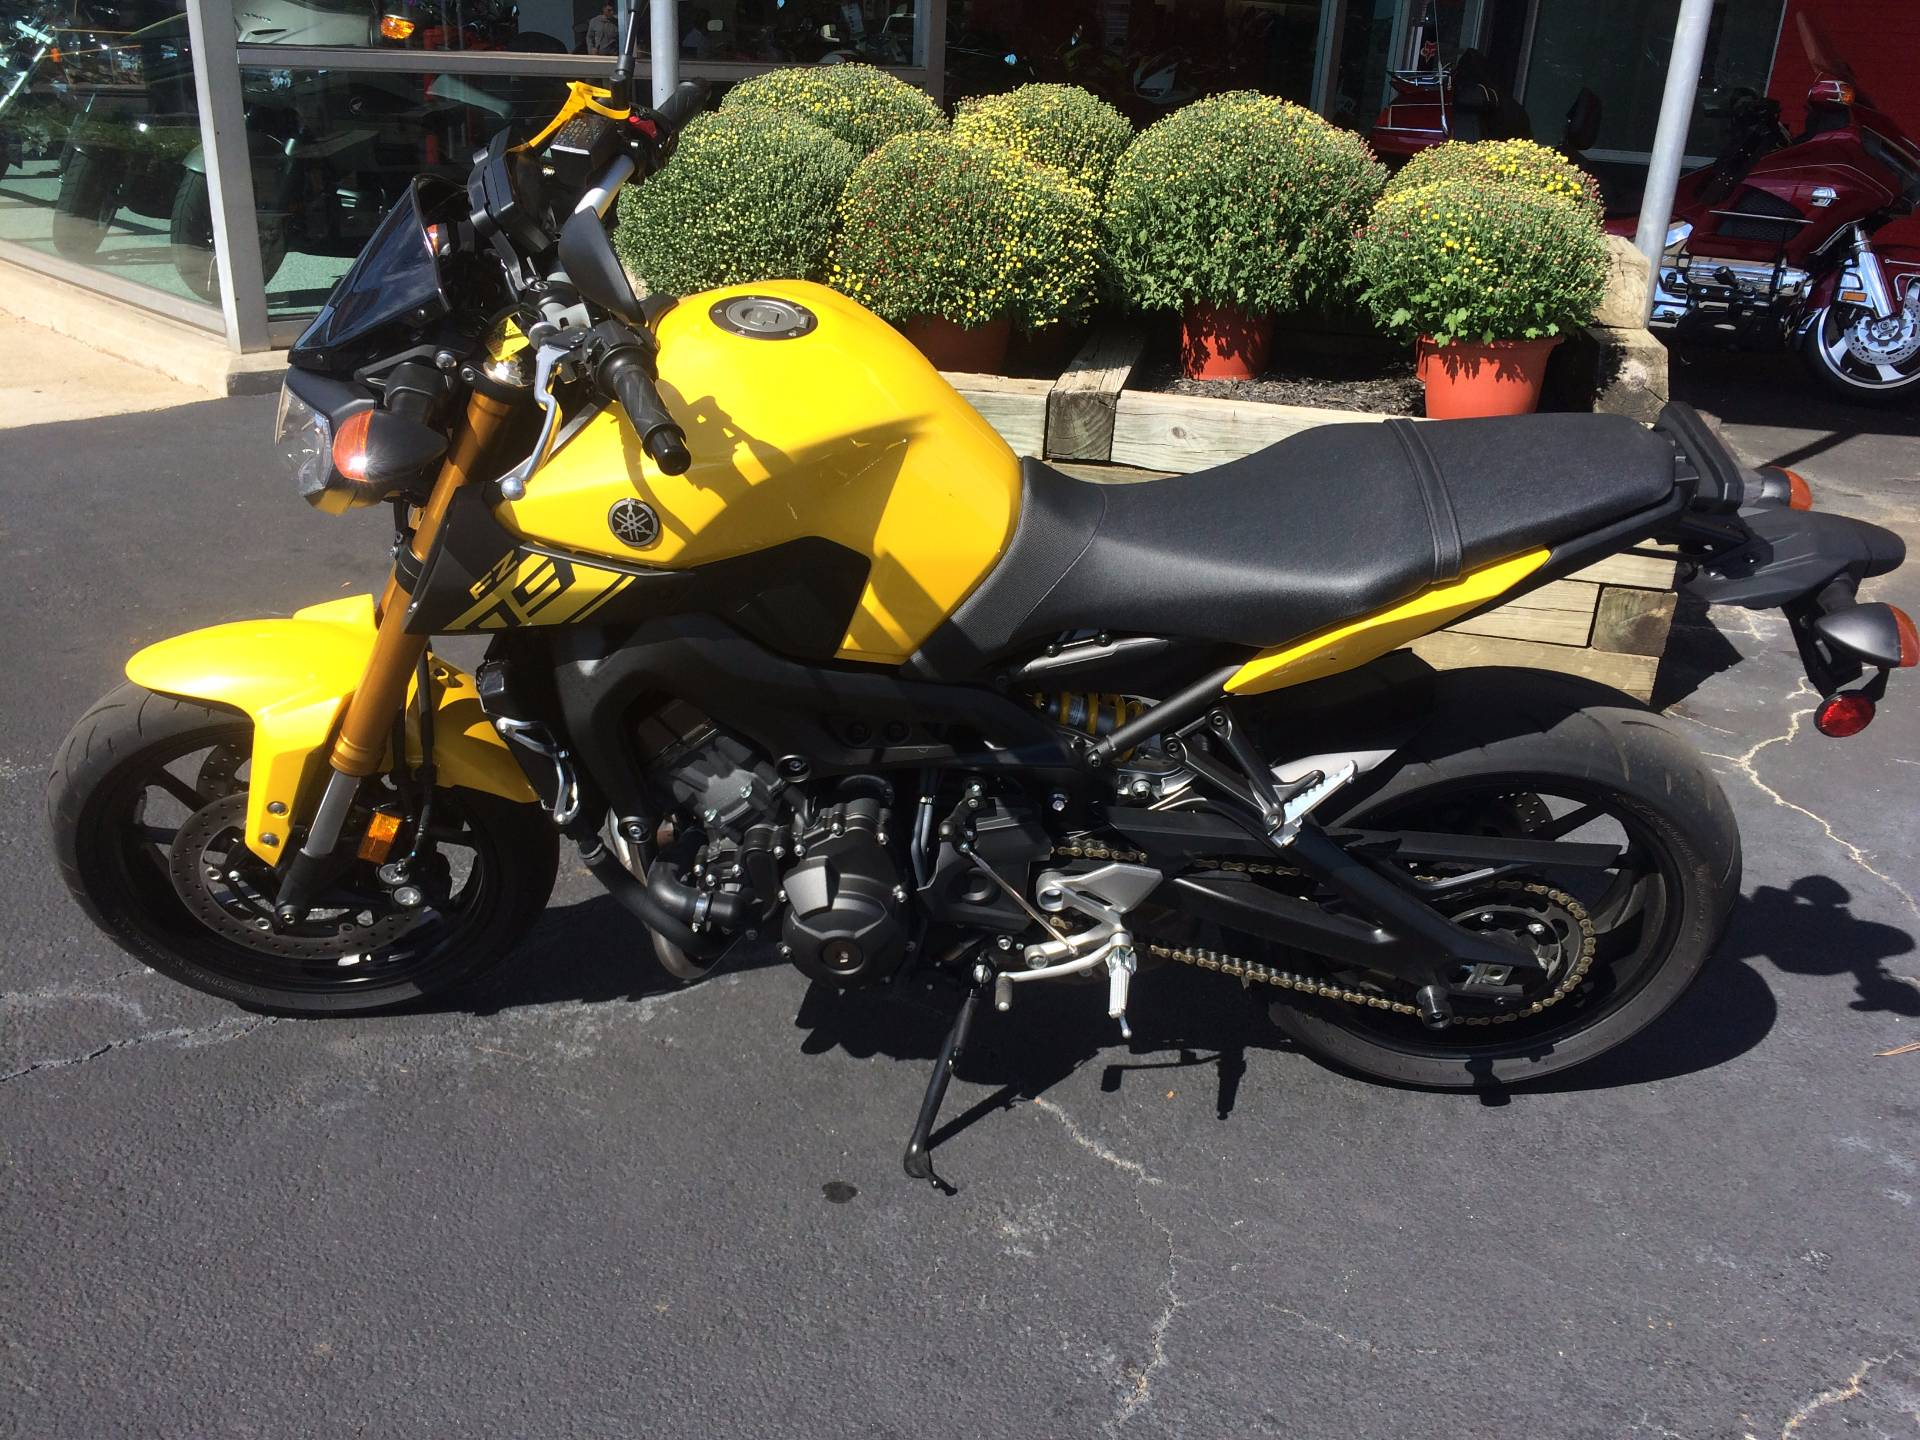 Used 2015 yamaha fz 09 motorcycles in knoxville tn for Honda and yamaha of knoxville